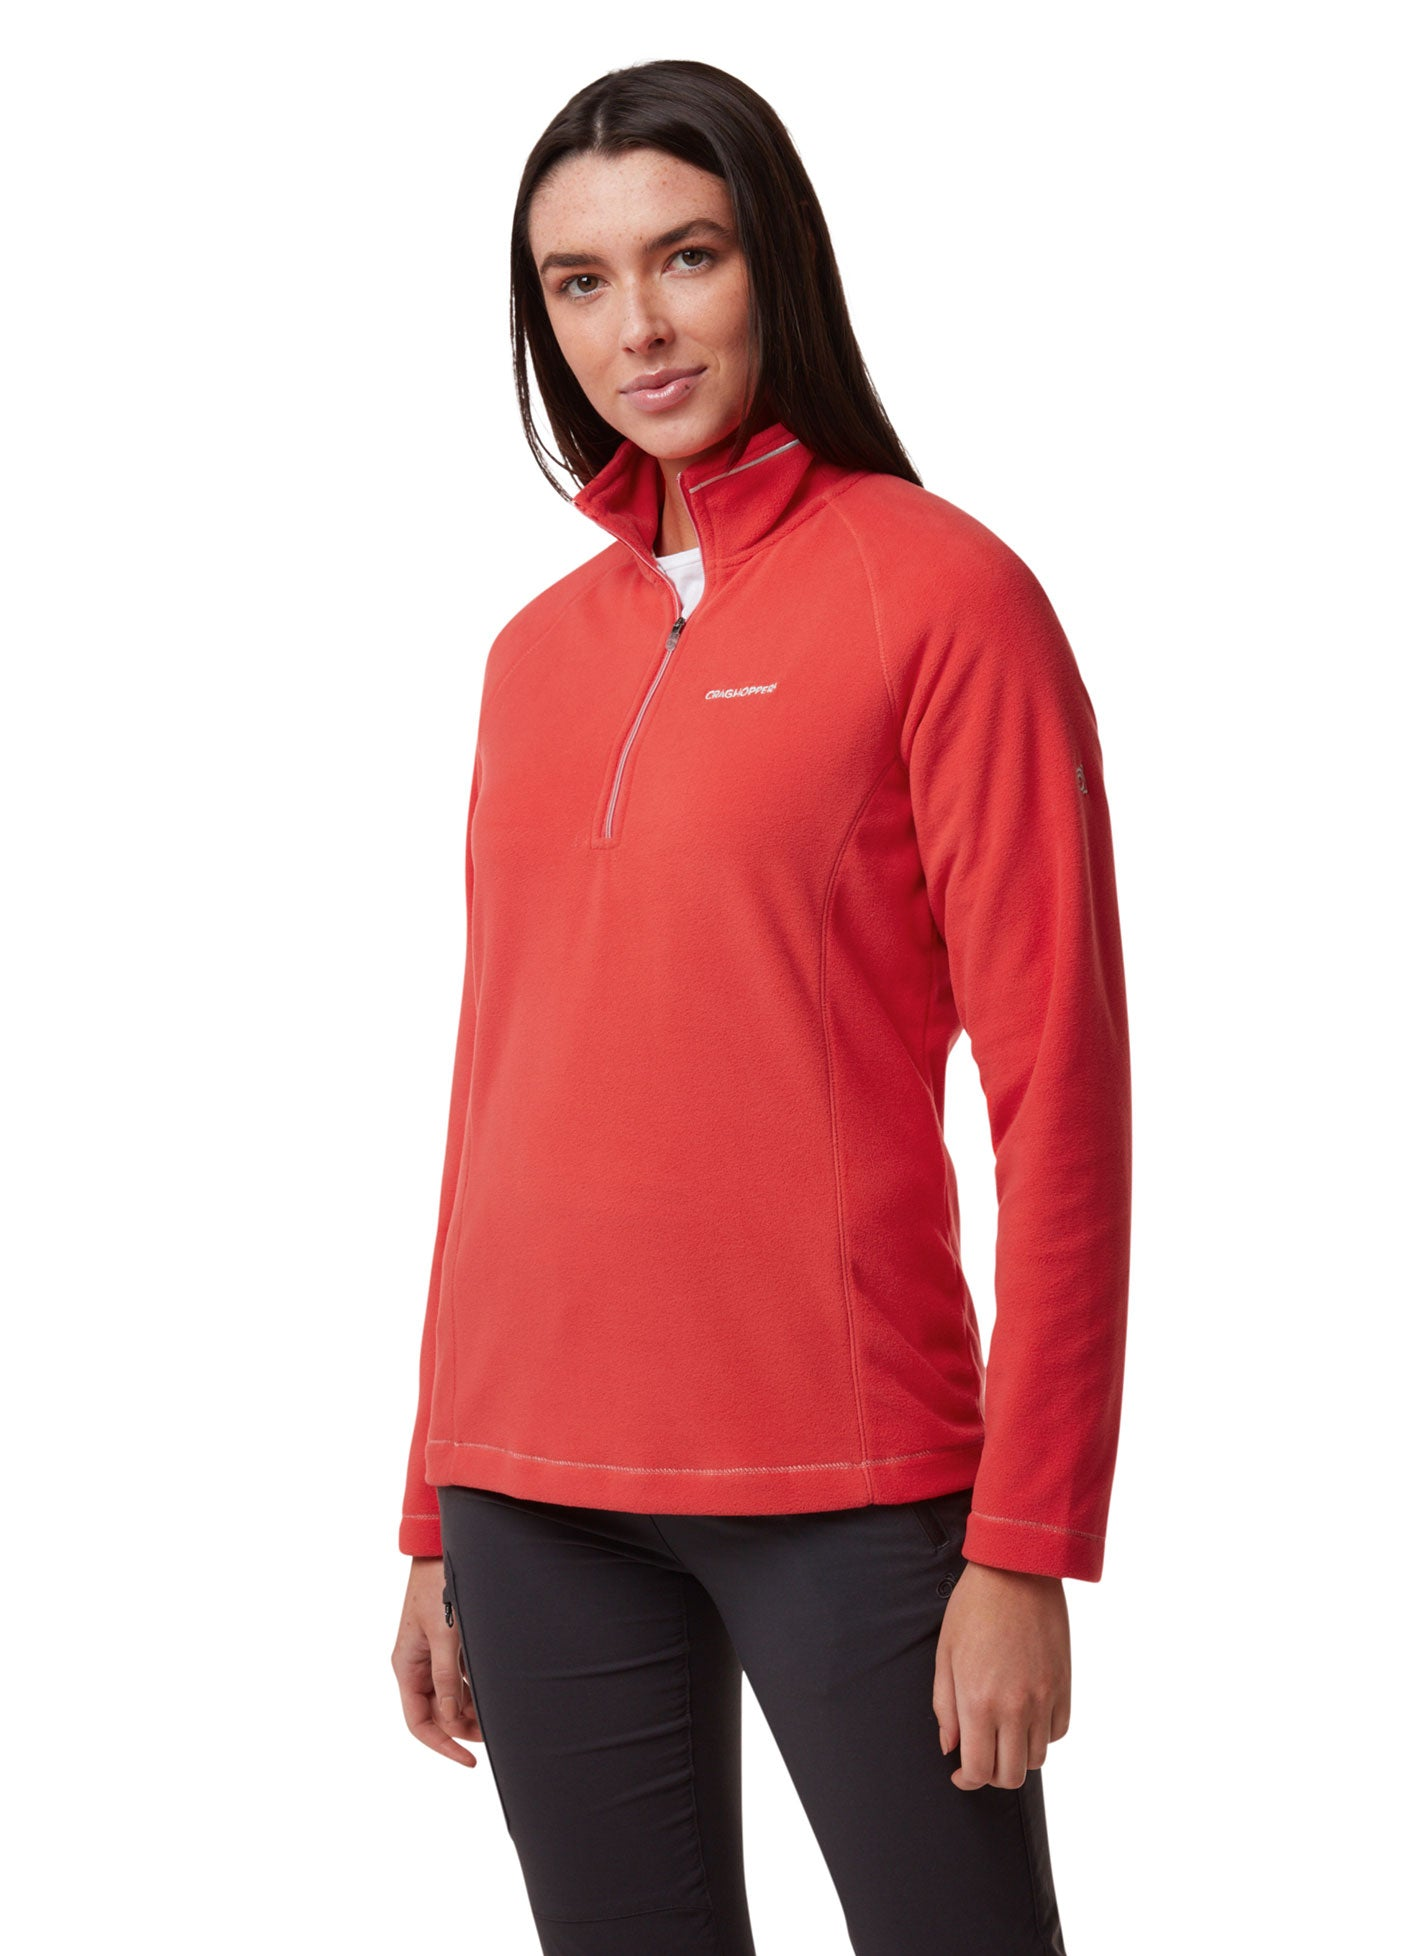 Rio Red Miska Women's Microfleece Top by Craghoppers